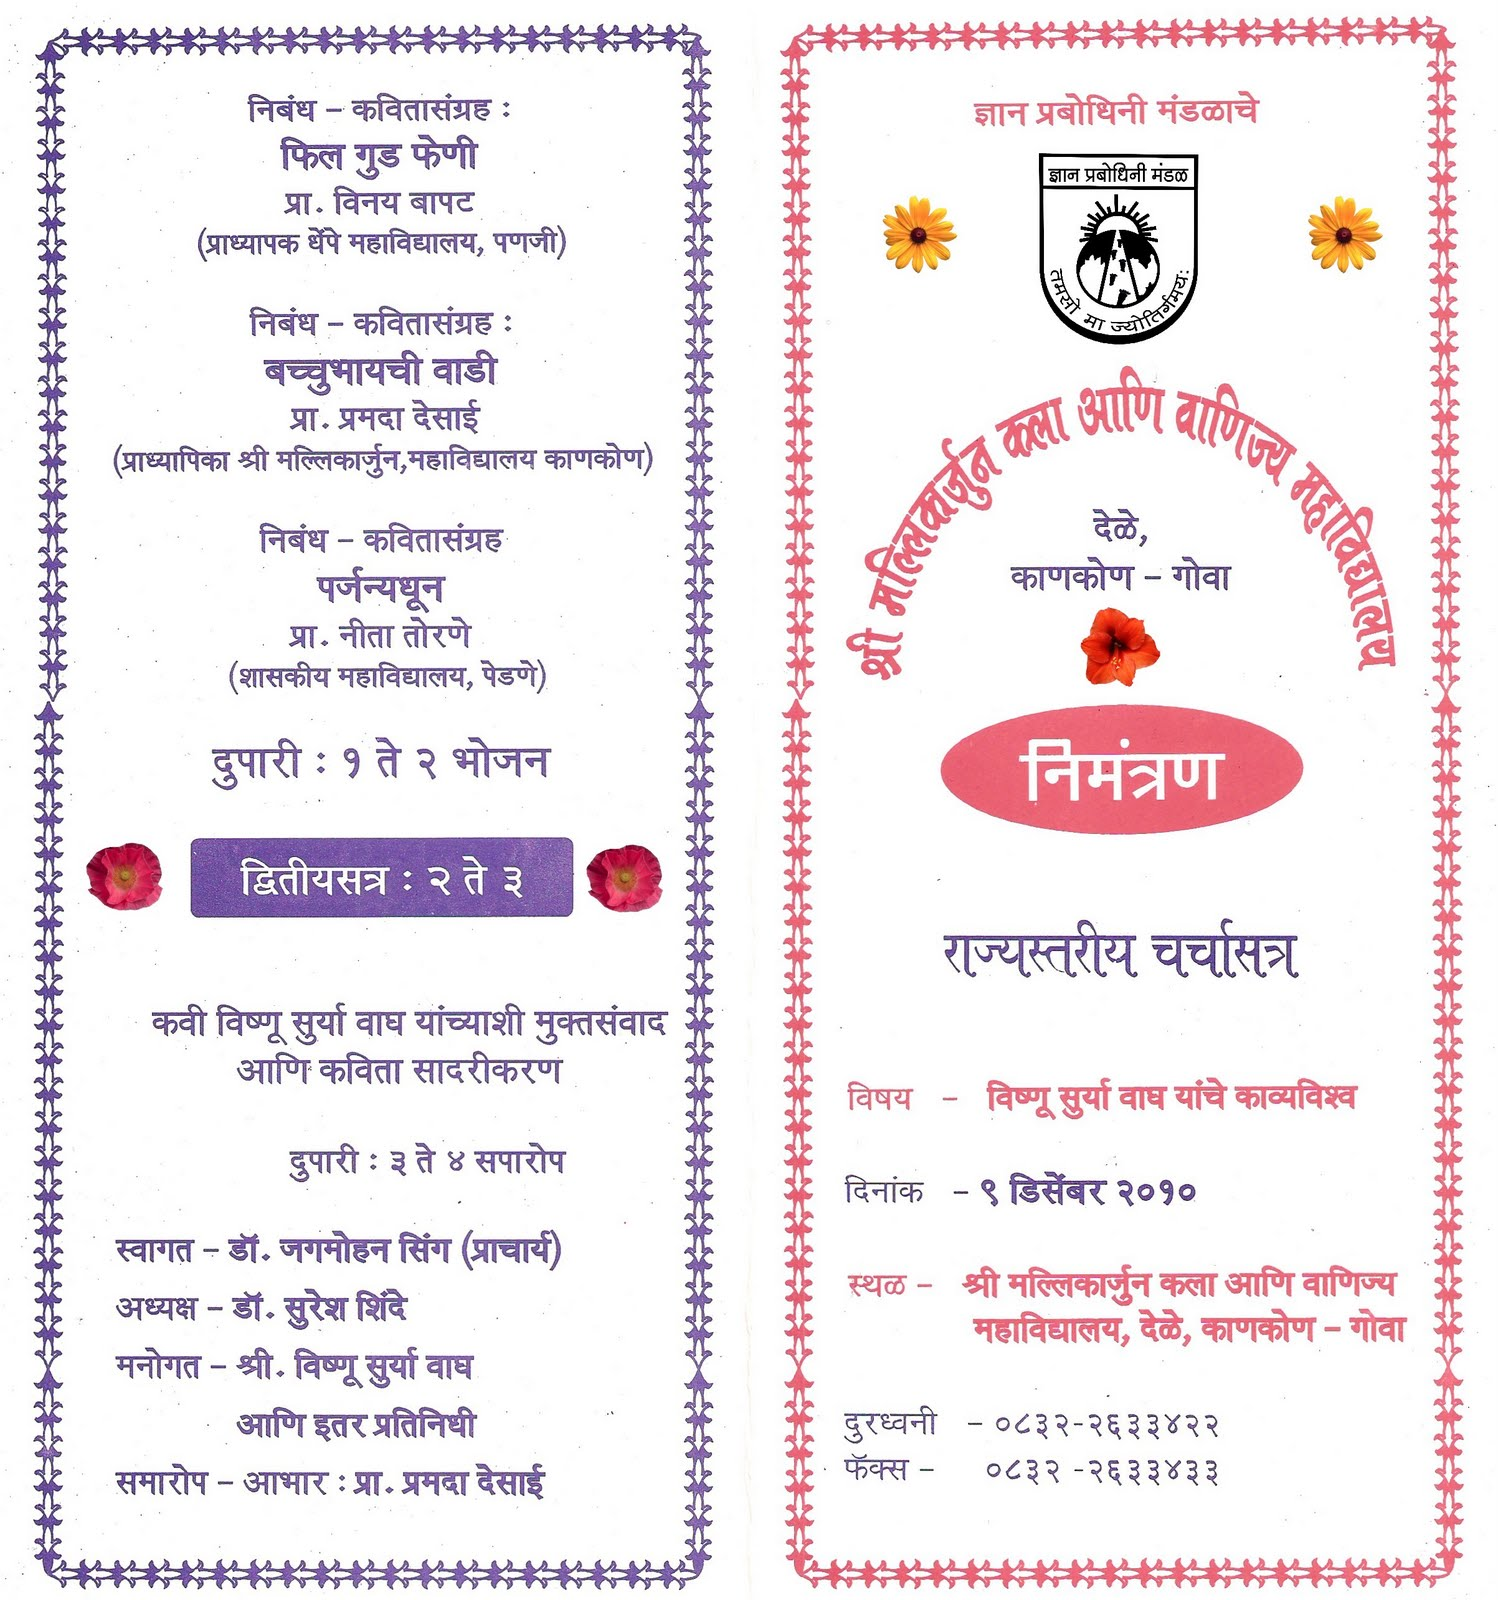 Shree mallikarjun college of arts commerce marathi seminar marathi seminar invitation stopboris Choice Image